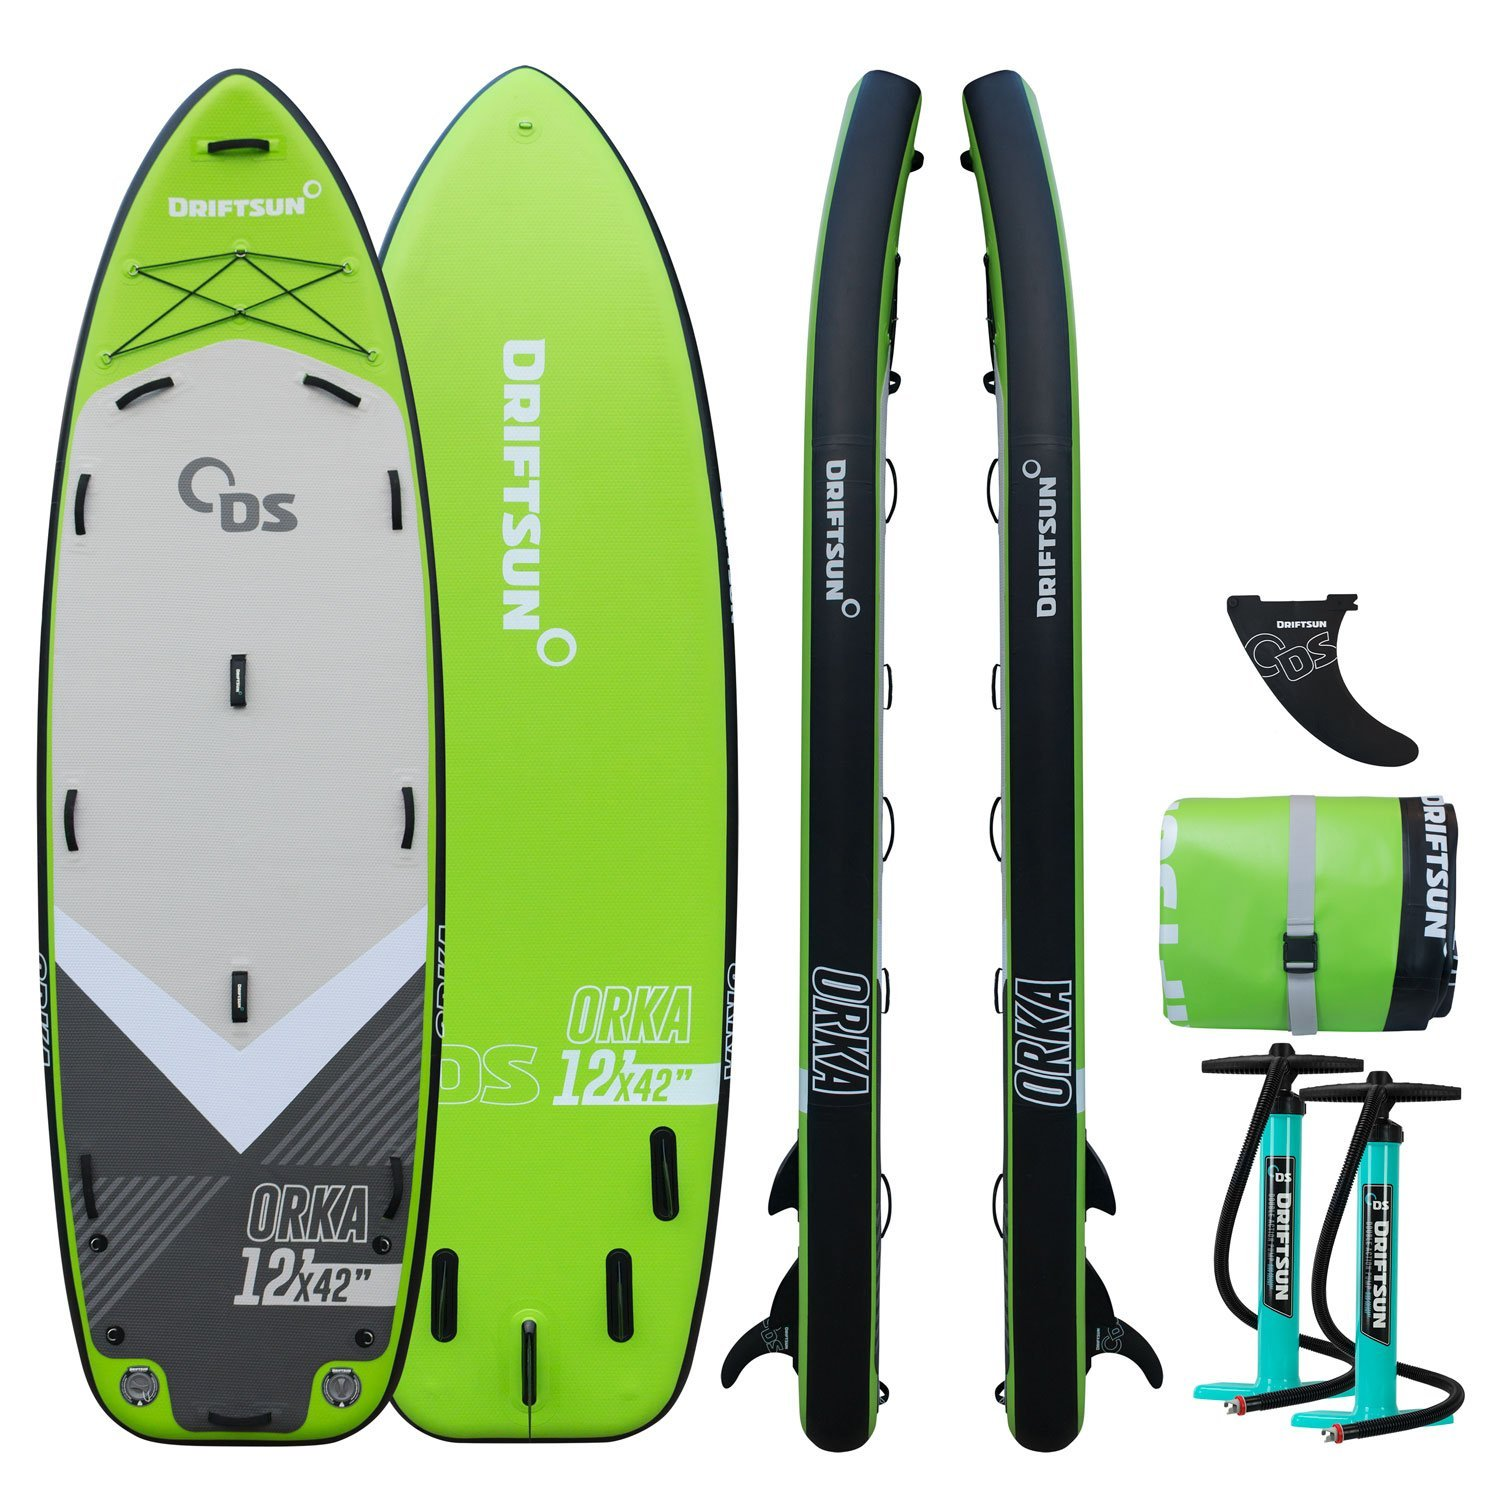 Driftsun Orka 12 Gear Vessel Paddle Board Multi Person iSUP Group Inflatable Stand Up Paddleboard with Two High Pressure... by Driftsun